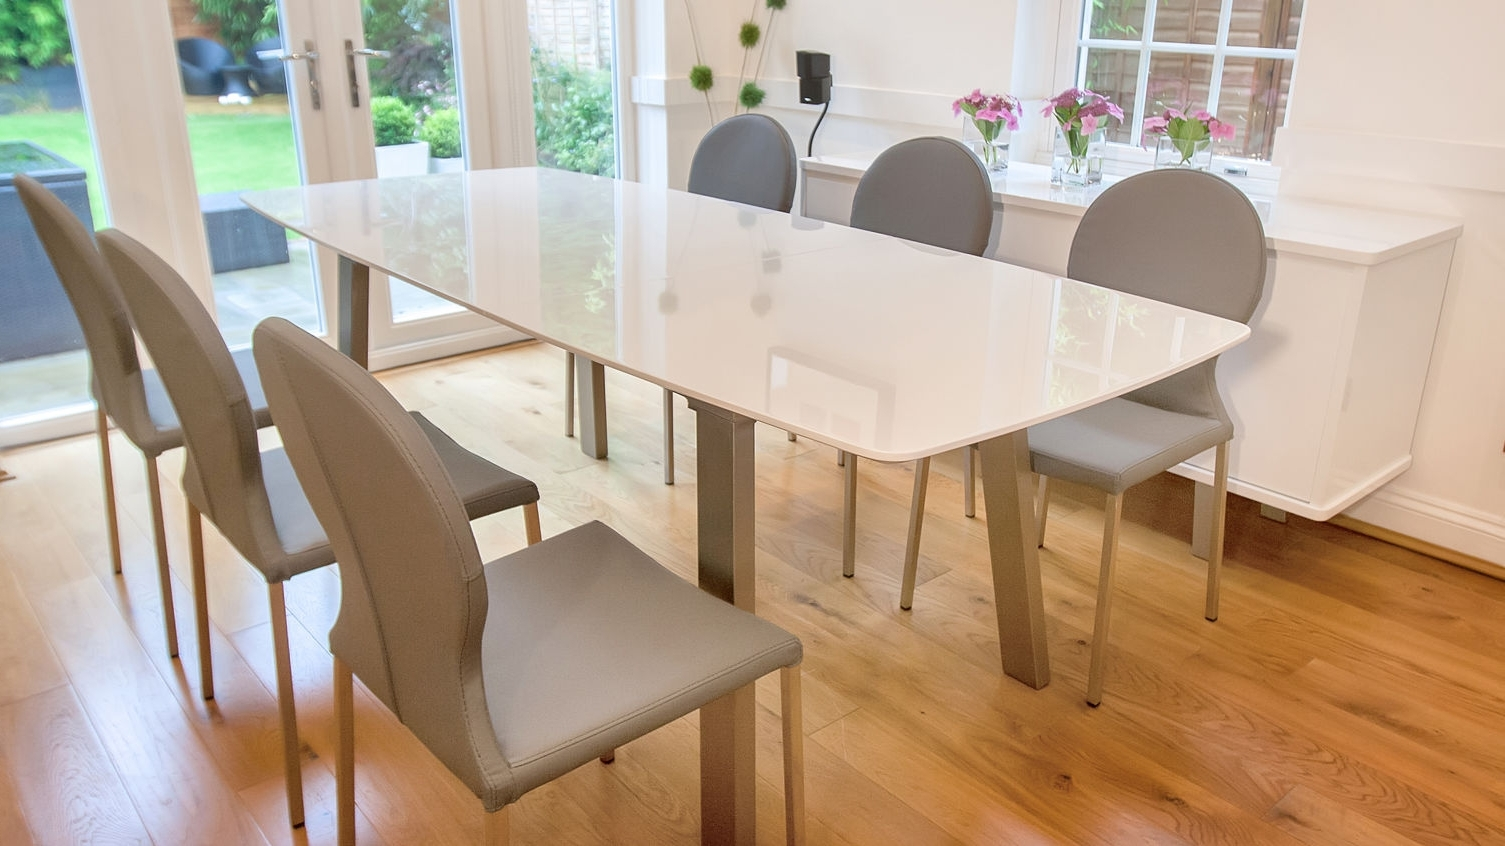 Extendable Dining Tables With 8 Seats Intended For Fashionable Extending Dining Room Tables And Chairs Dining Room Chair Slipcovers (View 5 of 25)